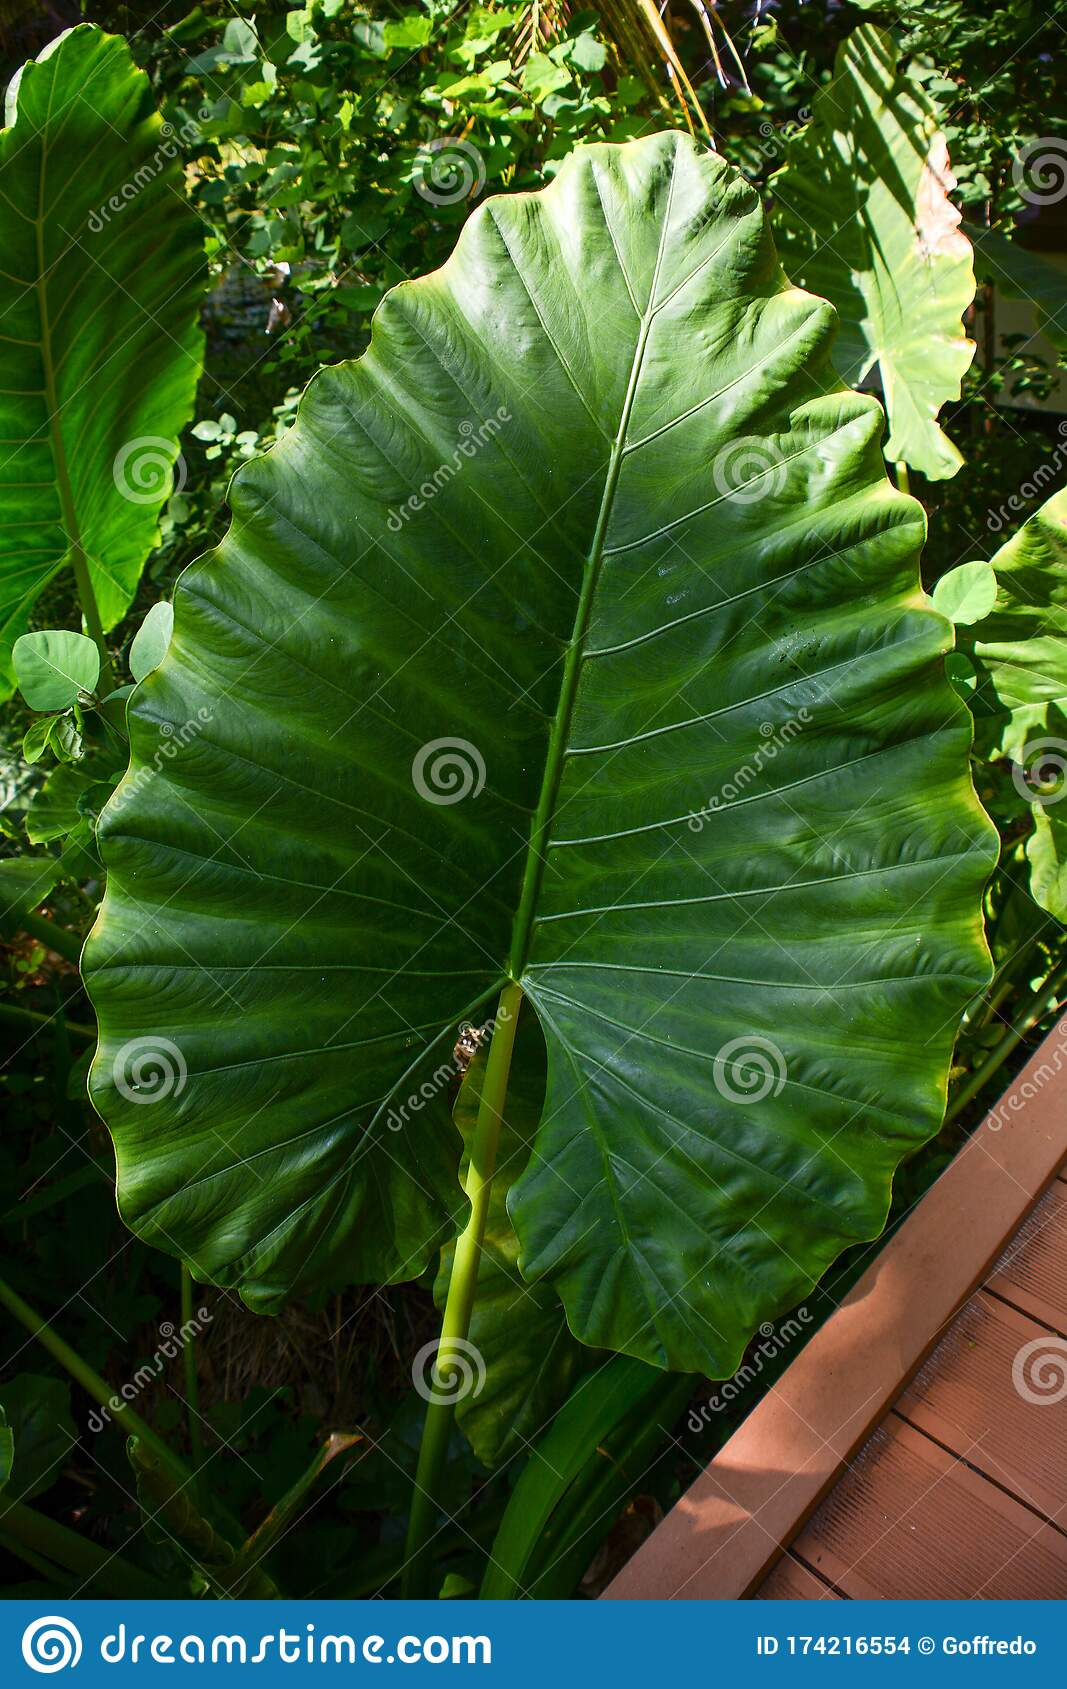 Tropical Leaf Stock Photo Image Of Natural Biology 174216554 Types include foliage, flowering, succulents and cacti. dreamstime com